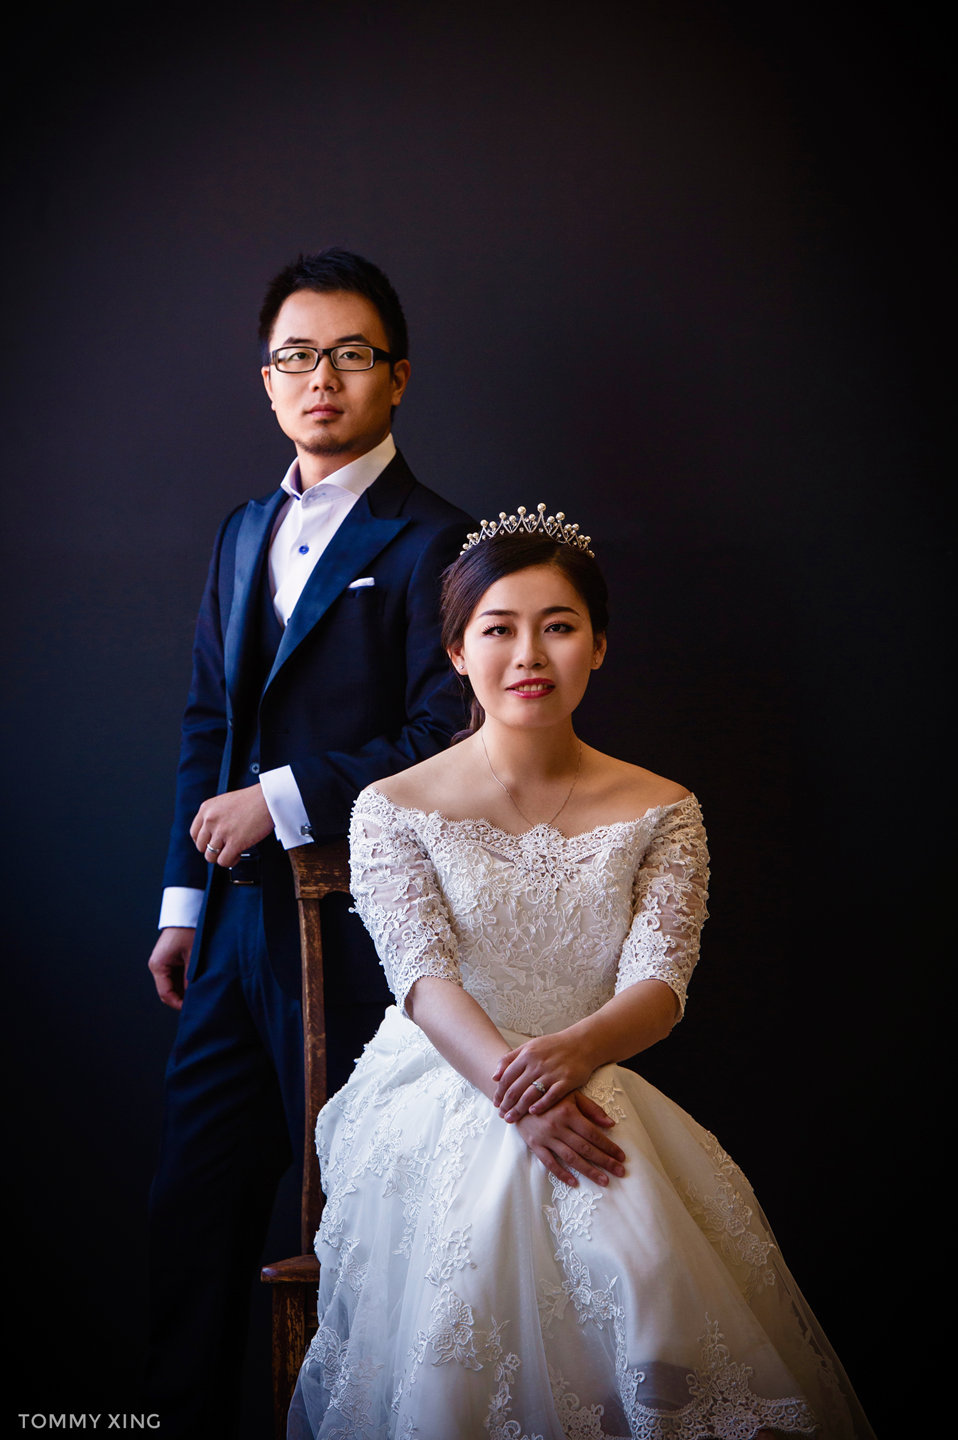 San Francisco Wedding Photo 旧金山湾区婚纱照 Tommy Xing Photography 洛杉矶 06.jpg